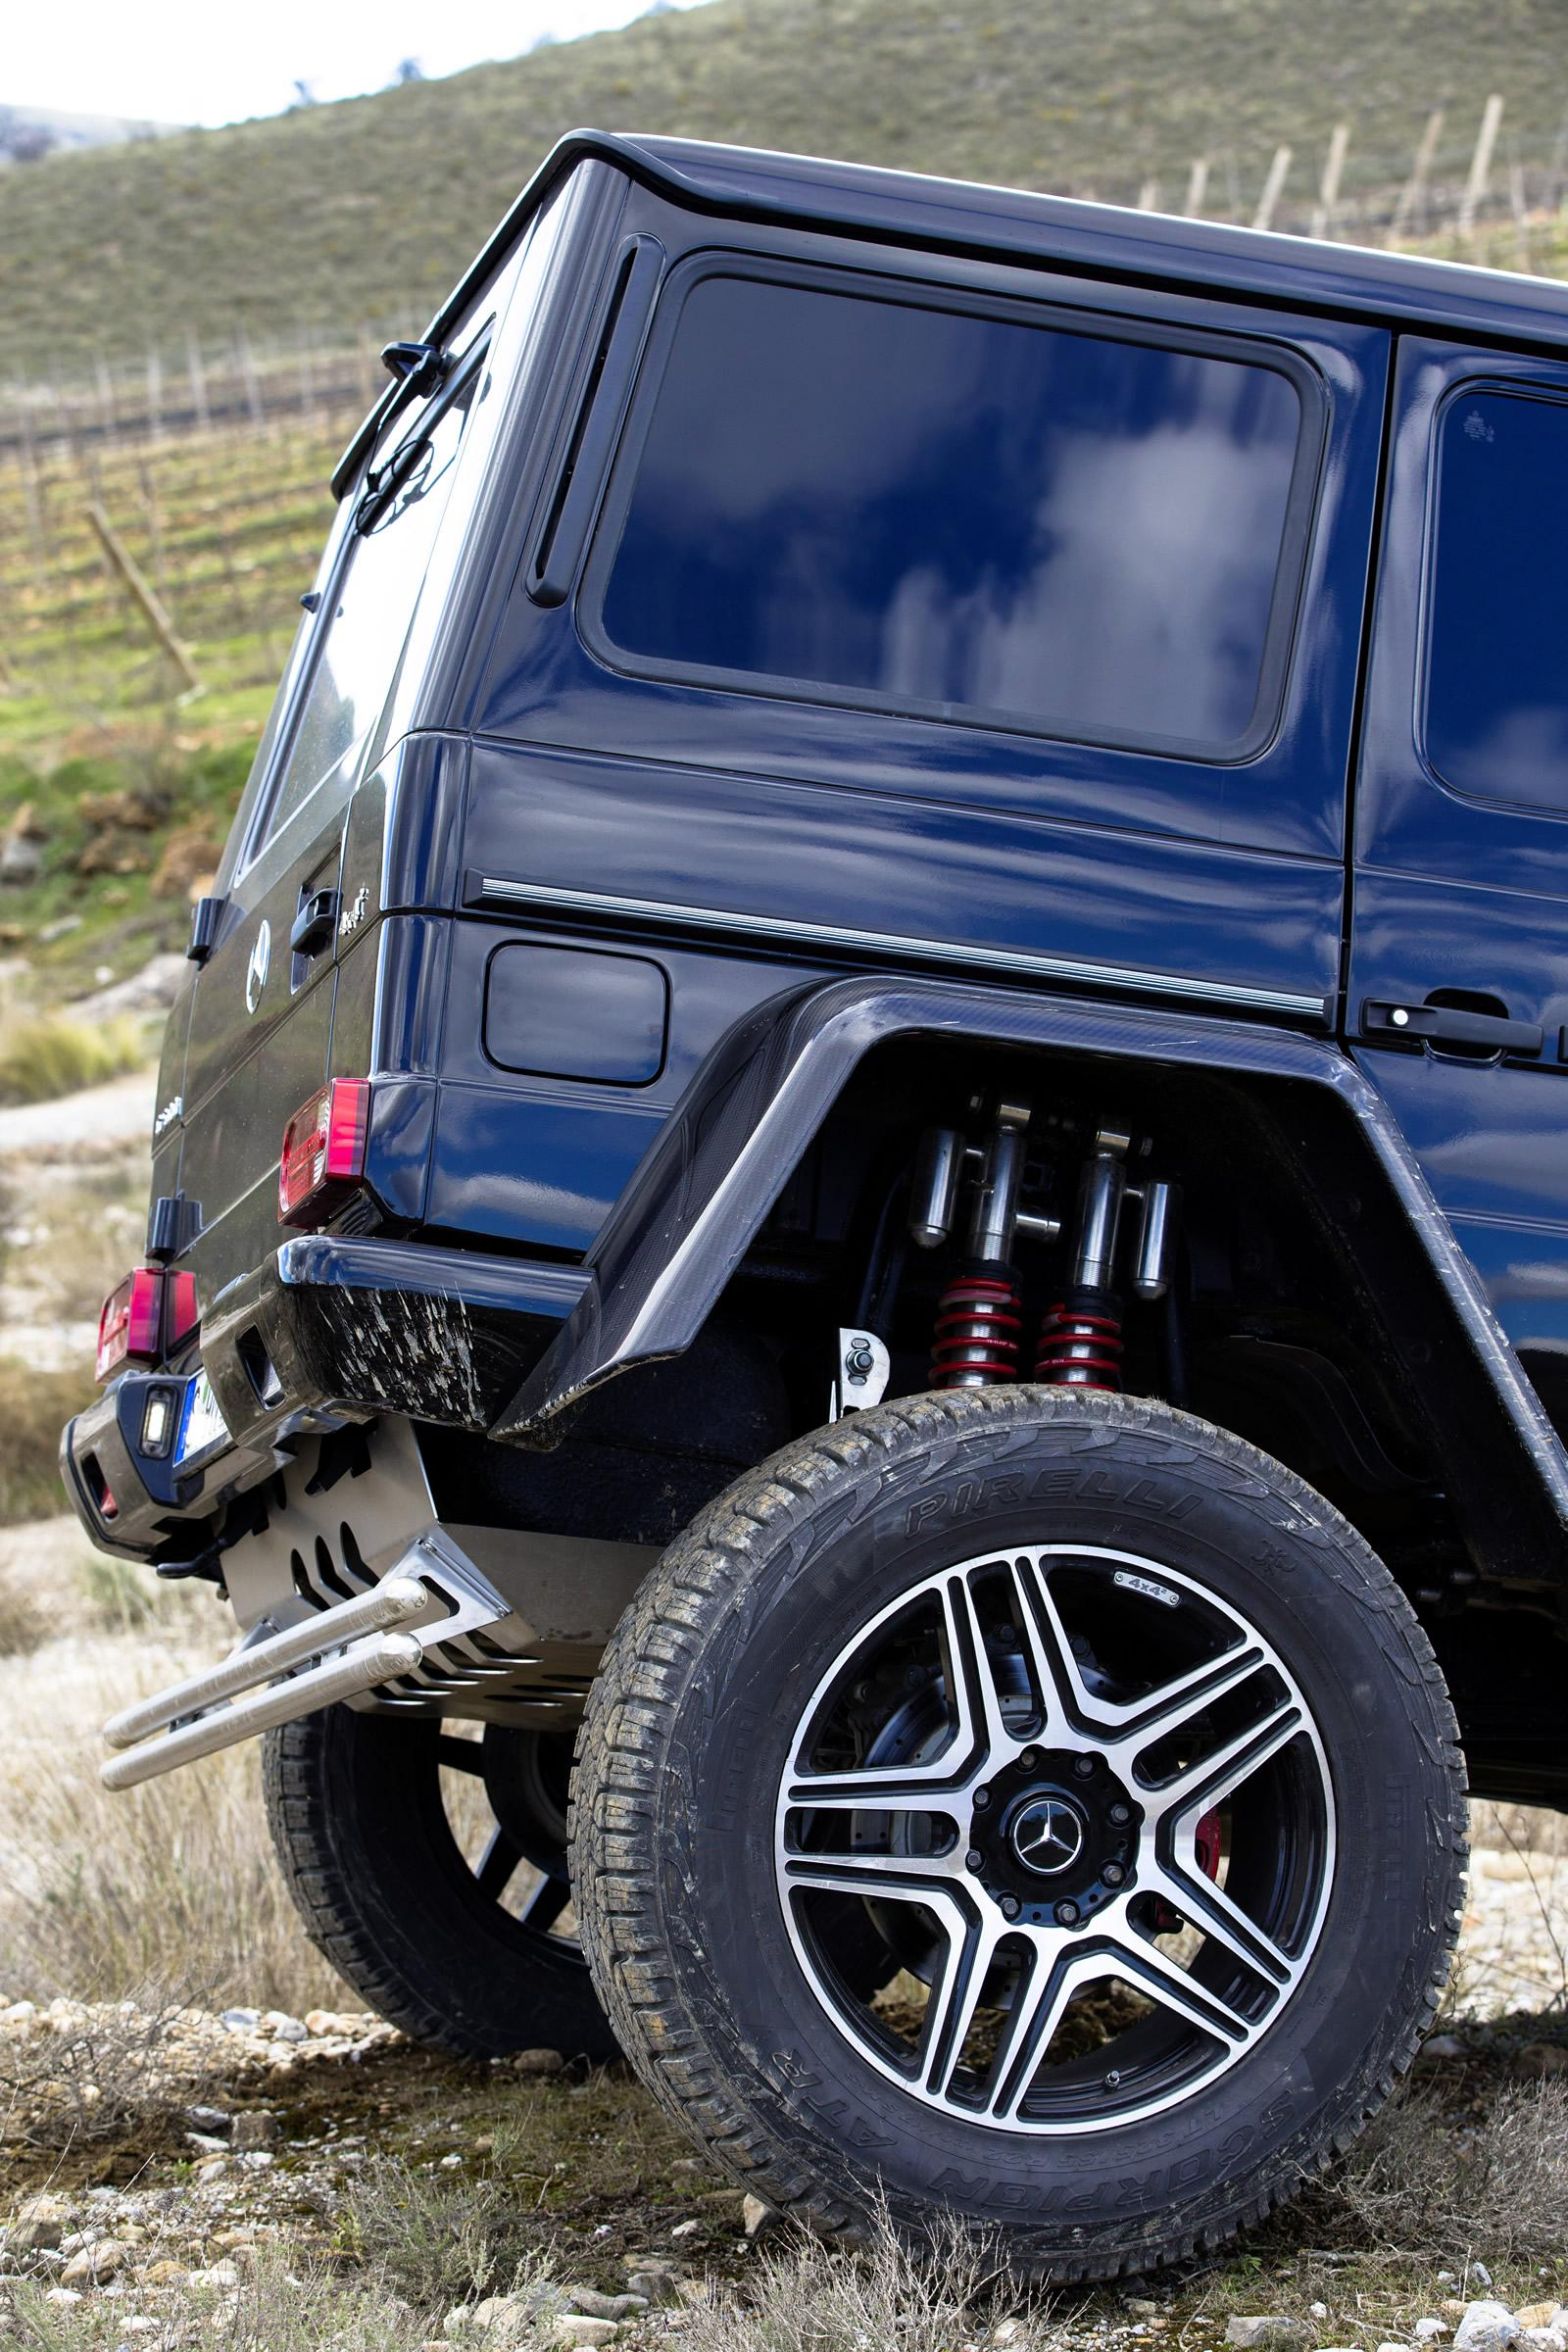 Mercedes Benz G500 4x4 178 Price Announced It S More Than A